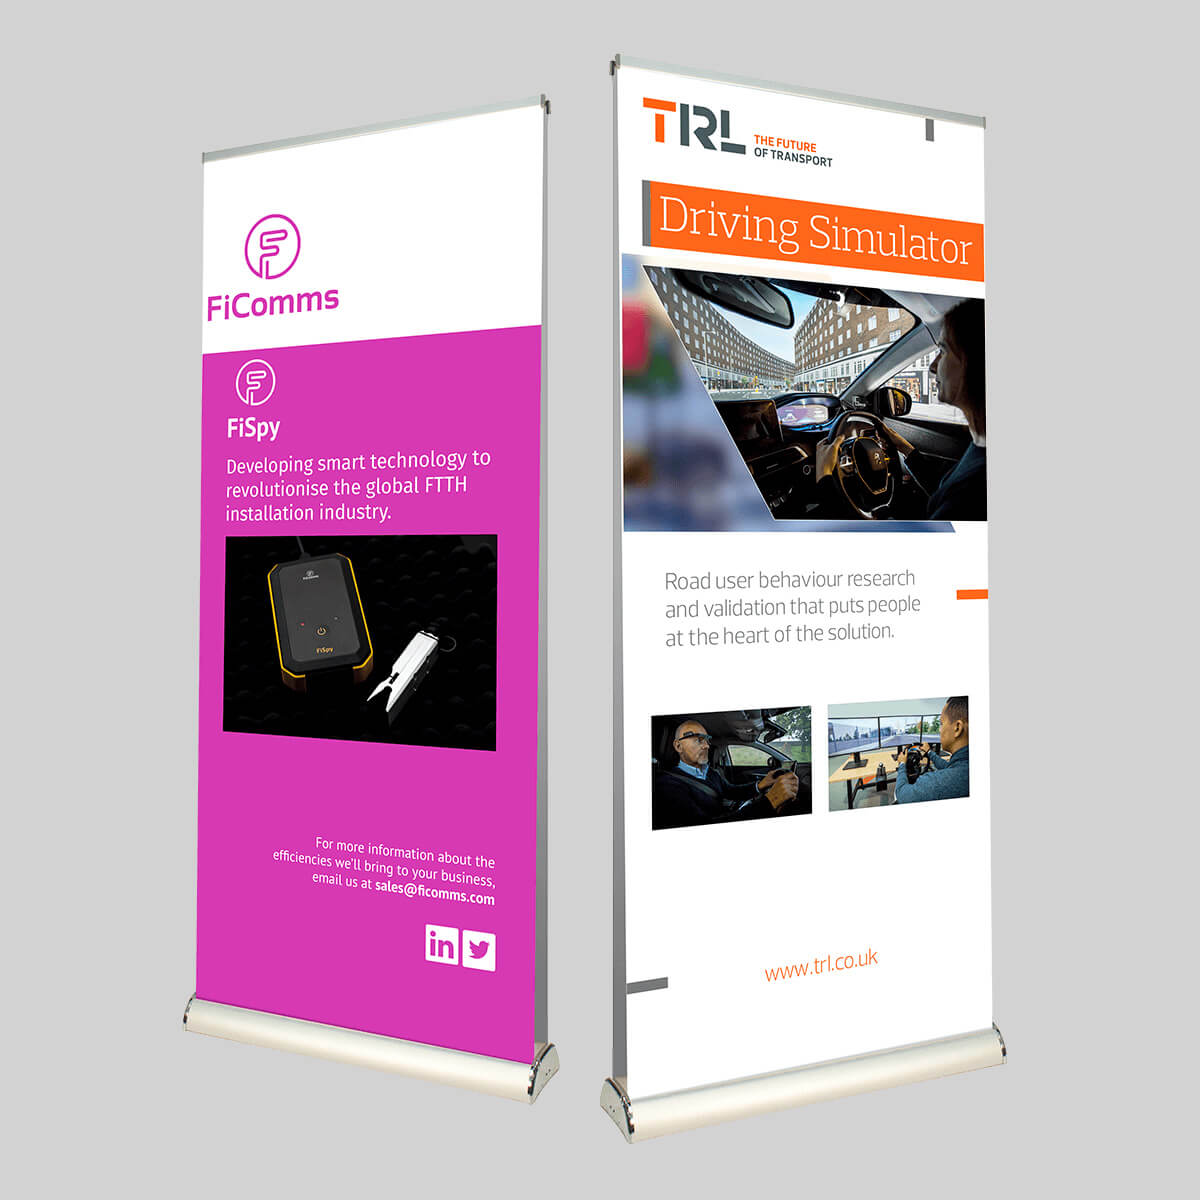 double sided pull up roller banner exhibition printing in Bracknell by Printroom